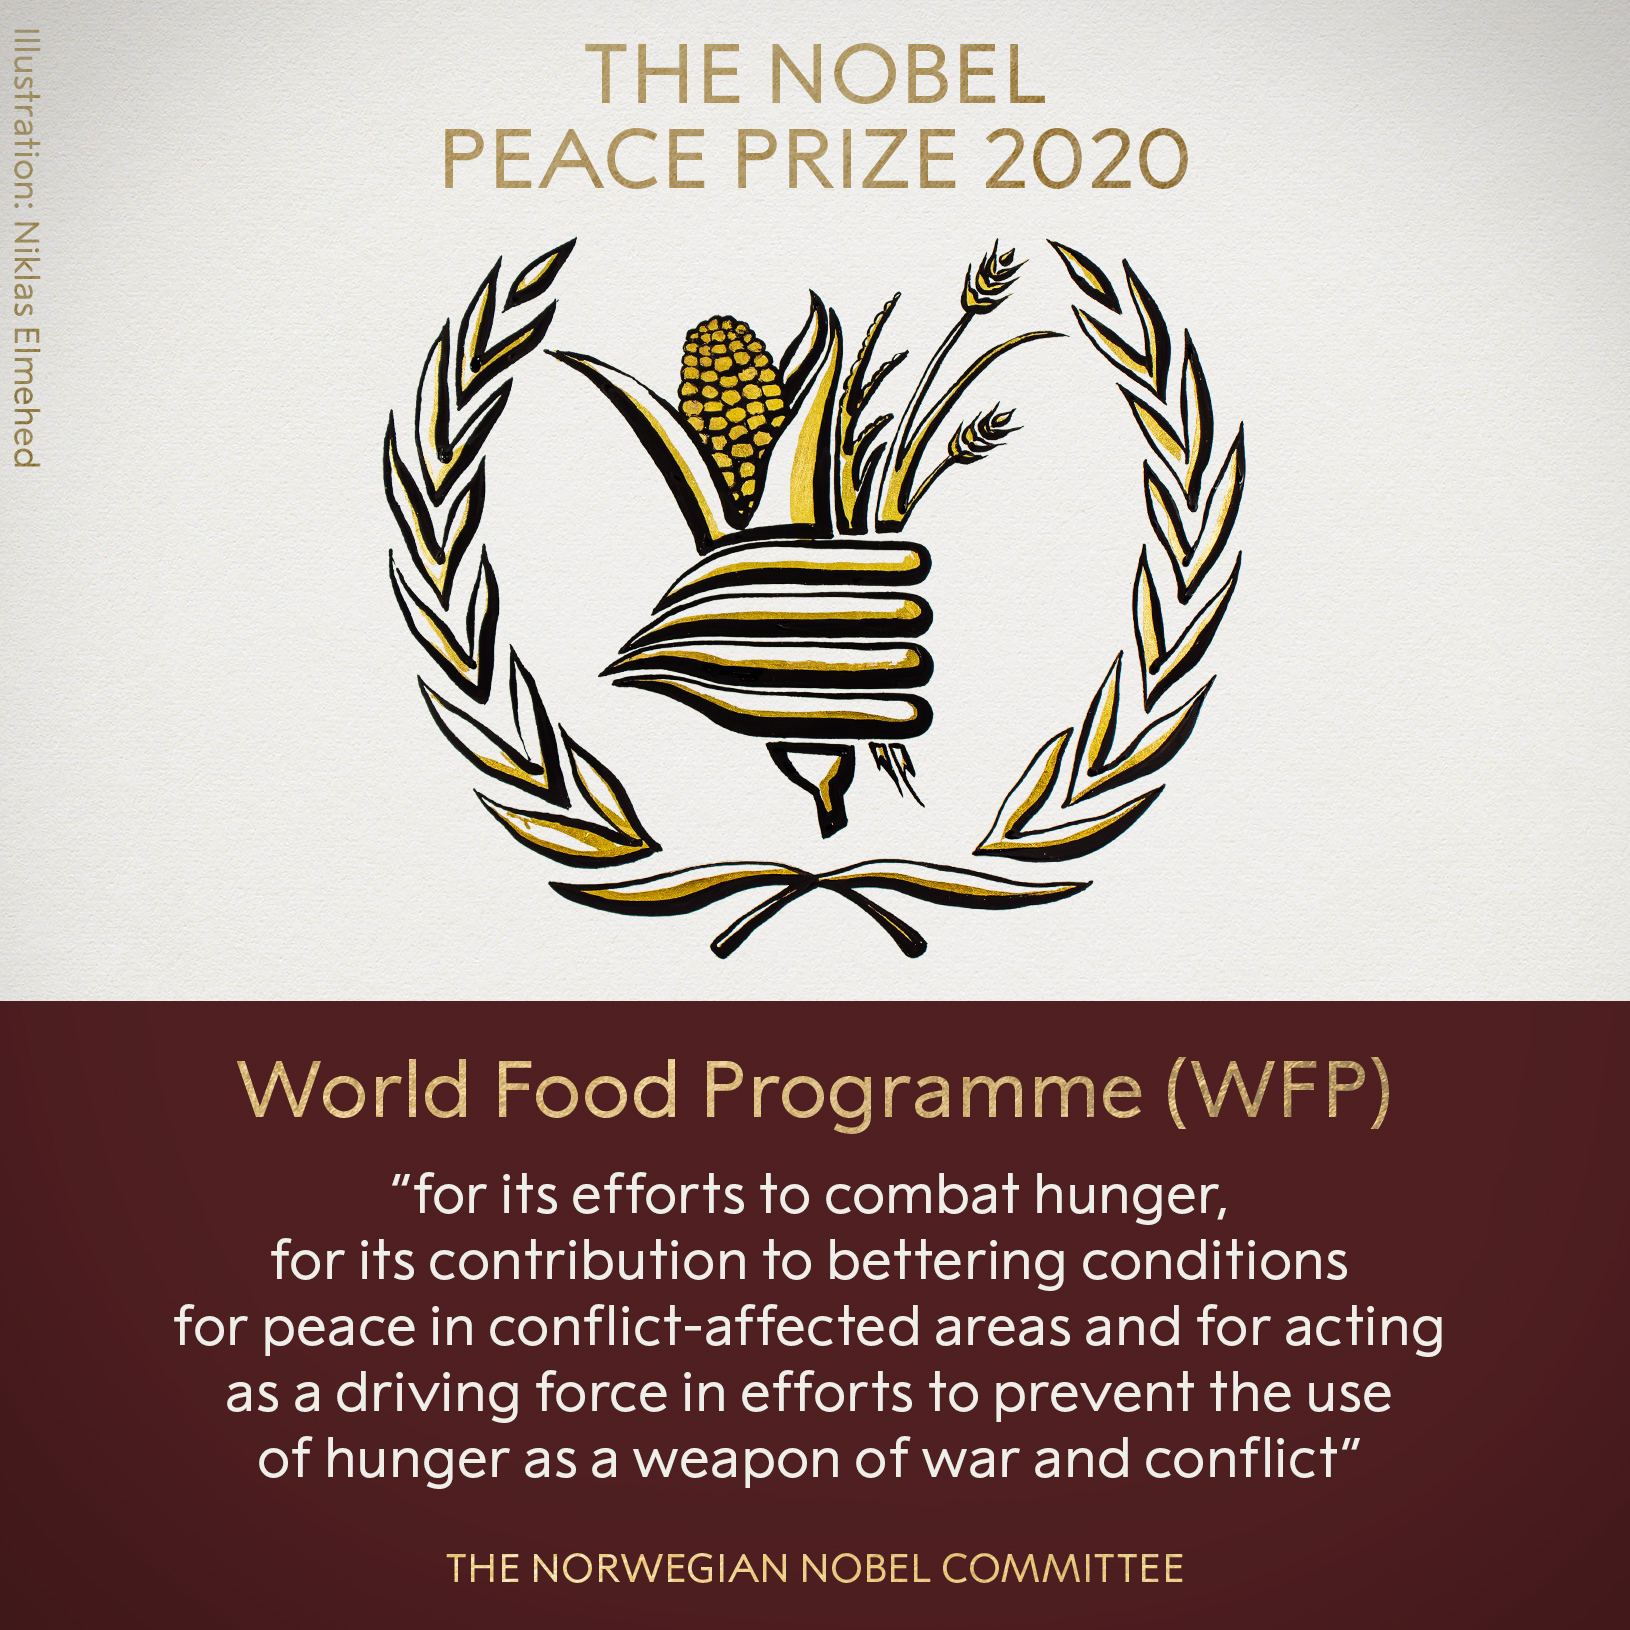 2020 Nobel Peace Prize is awarded to the World Food Programme (WFP)